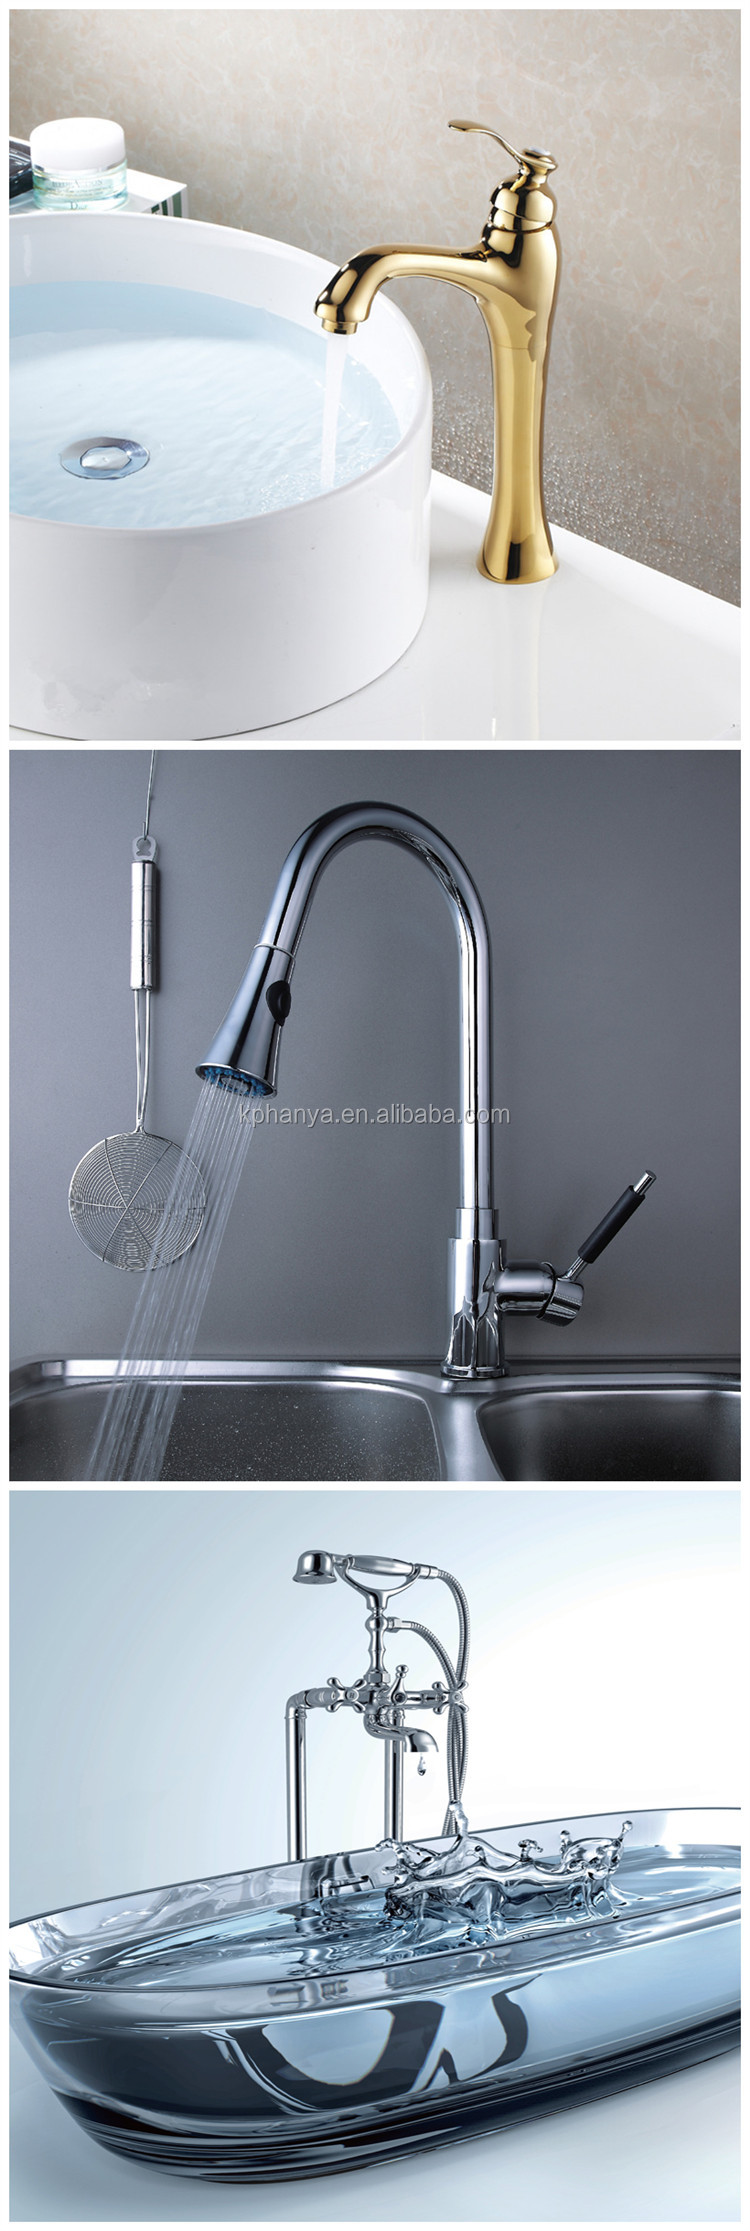 Waterfall Bathroom Marble Stone Vessel Sink Faucet Gold Plated Bath Mixer Tap